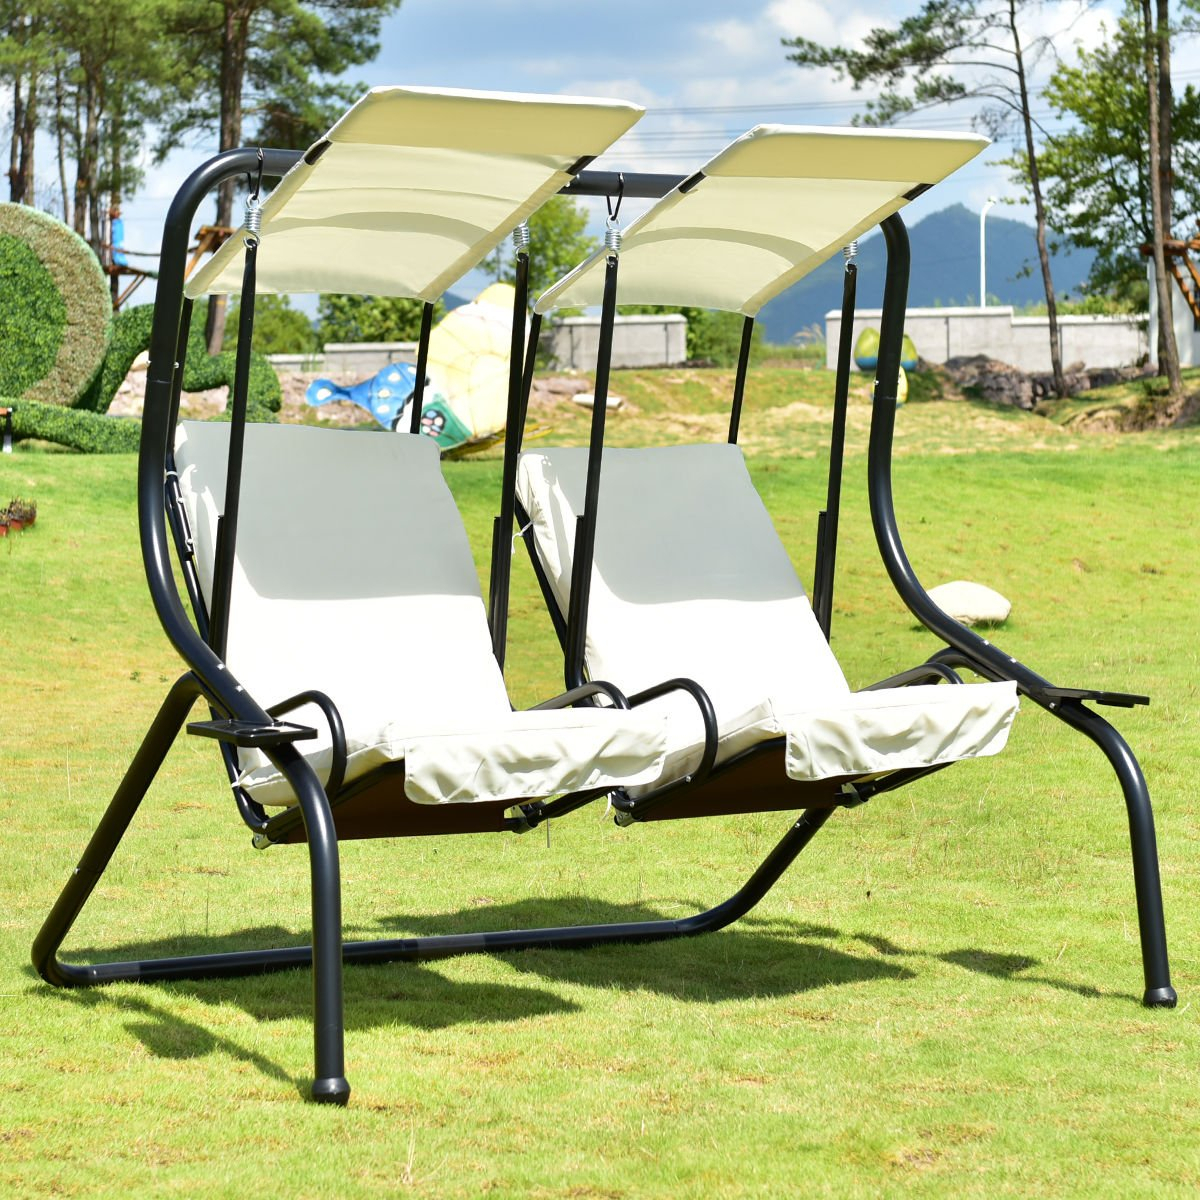 Tangkula 3 Person Patio Swing Glider Outdoor Swing Hammock Pertaining To 3 Person Red With Brown Powder Coated Frame Steel Outdoor Swings (View 20 of 25)